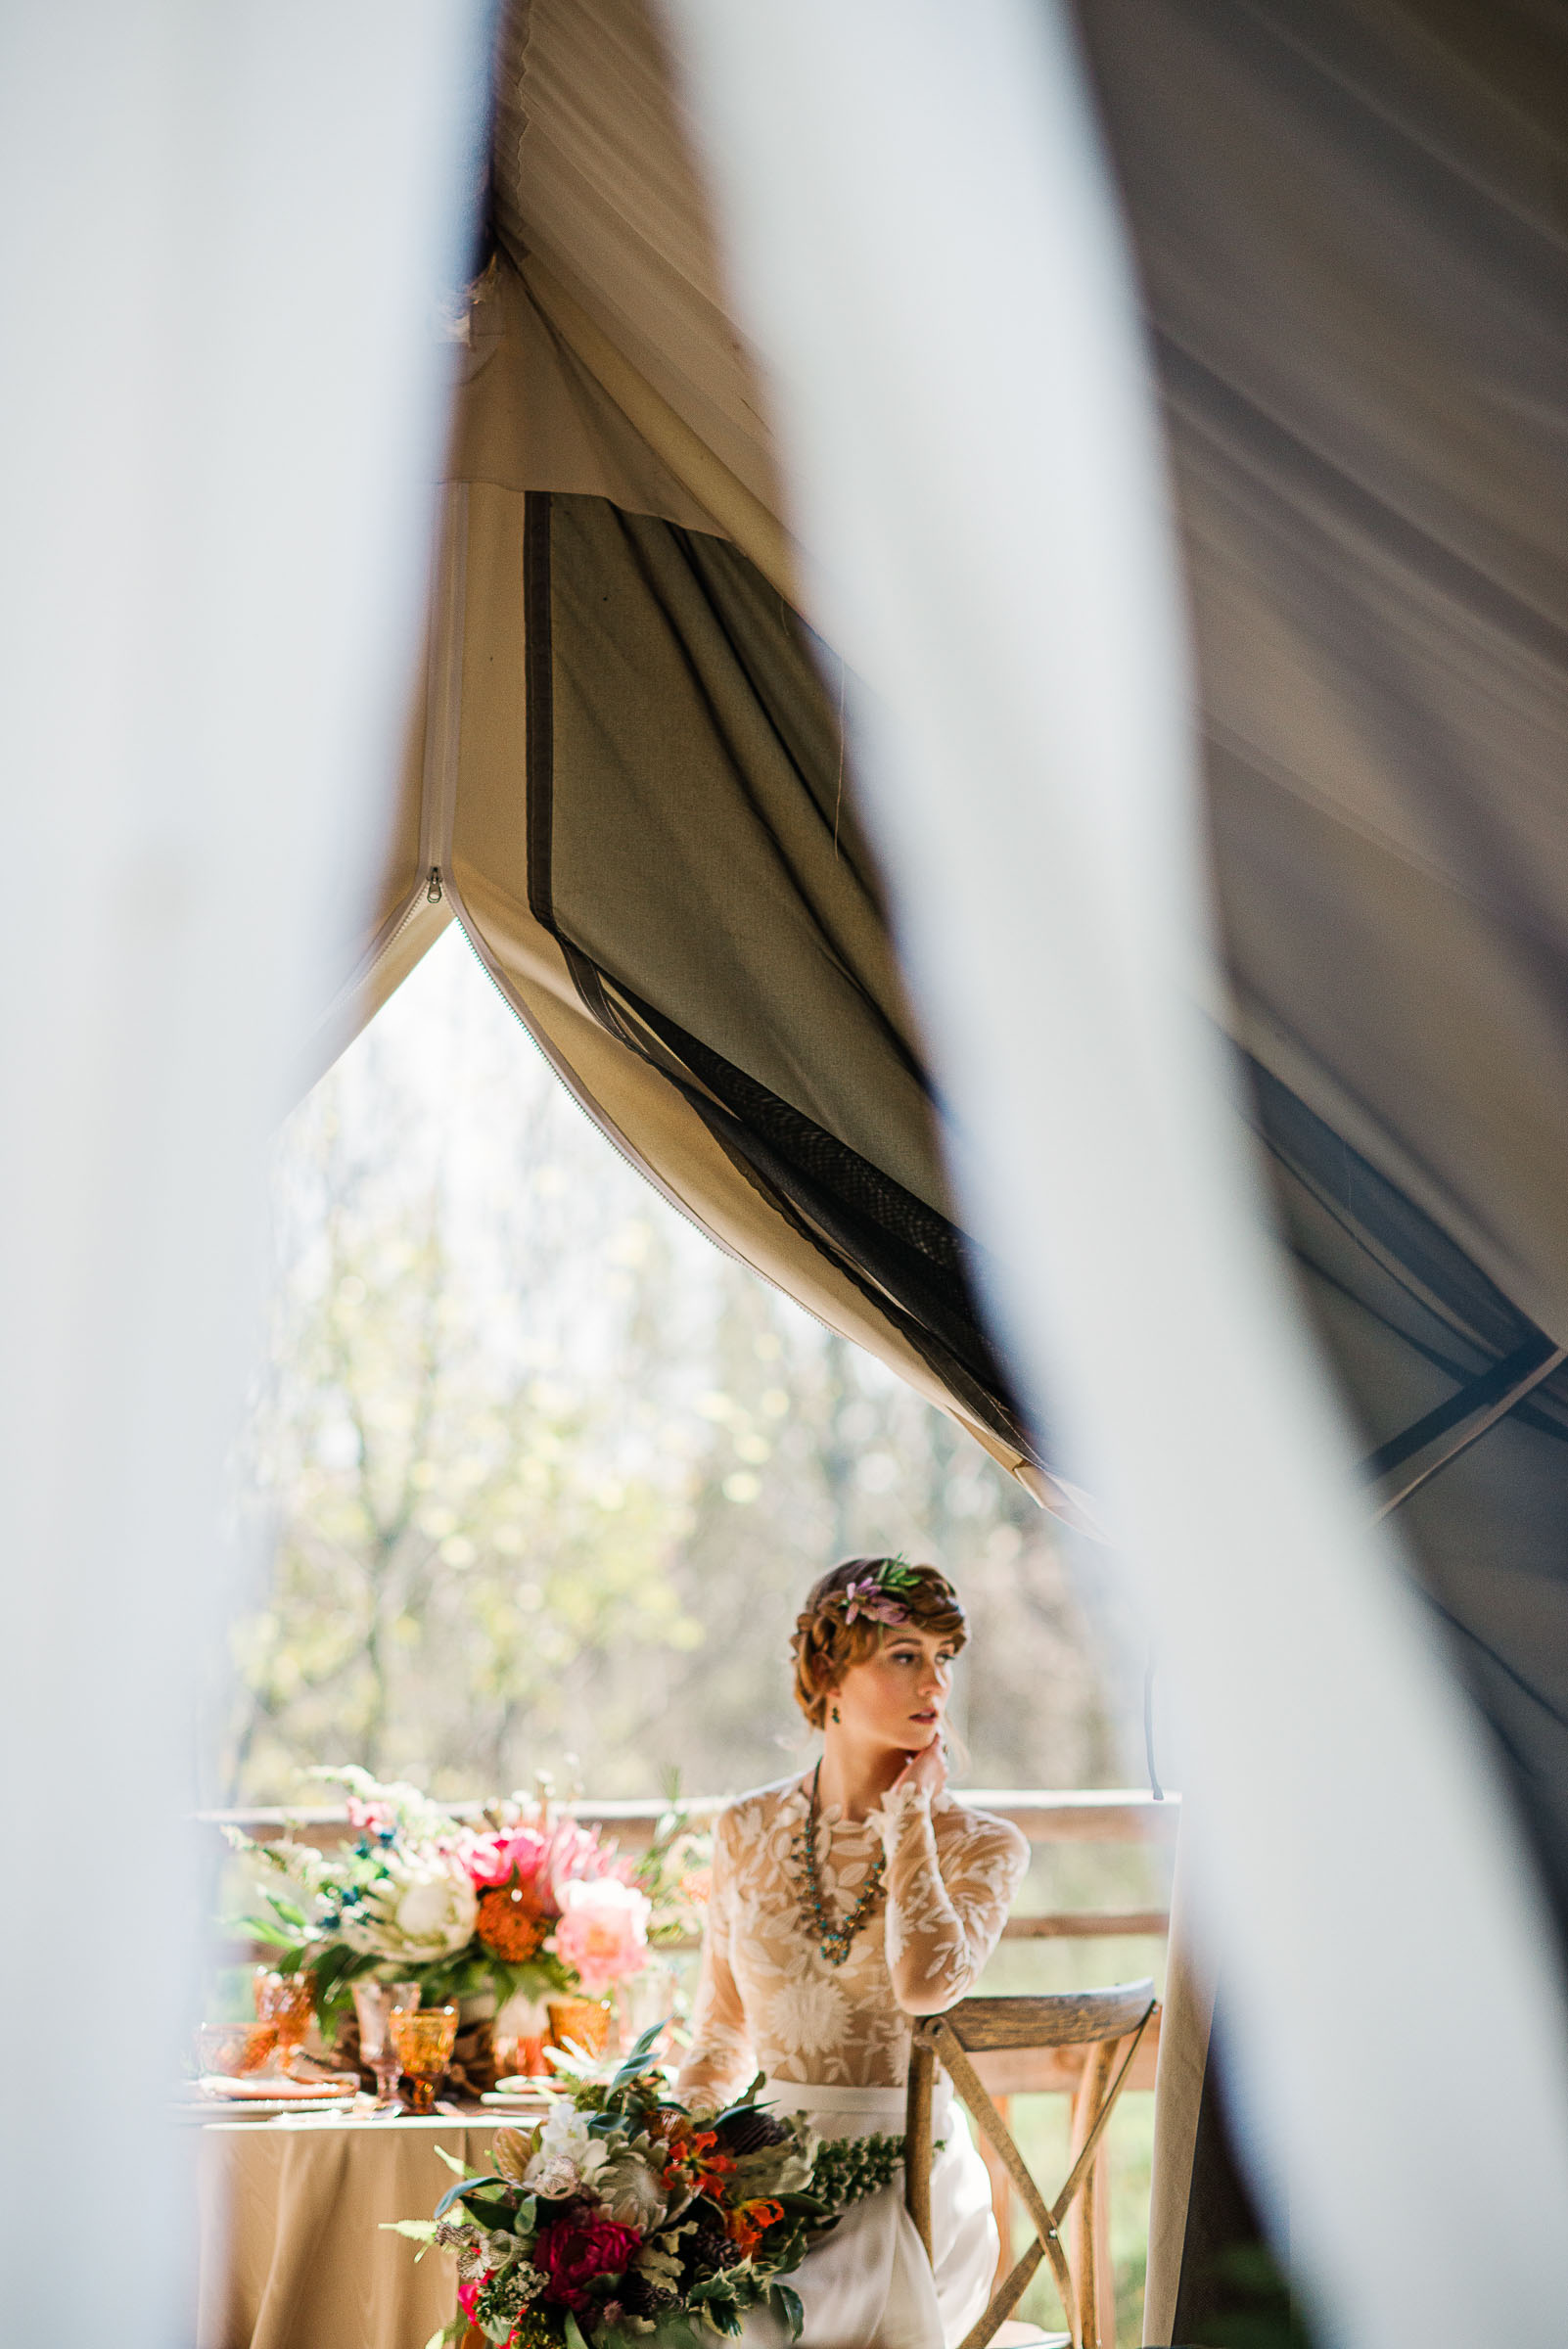 Alexandra-Elise-Photography-Ali-Reed-Film-Wedding-Photographer-New-York-Firelight-Camps-008